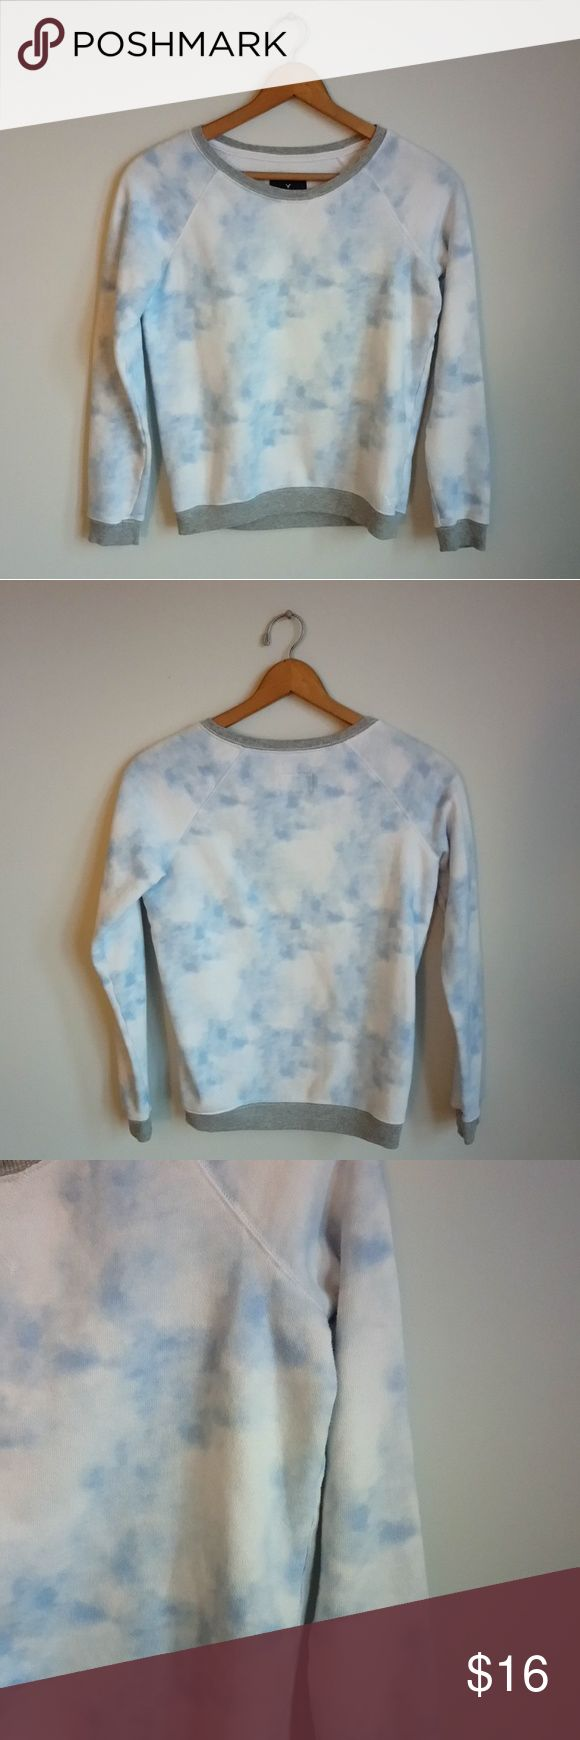 American Eagle Blue Tie Dye Sweatshirt American Eagle blue tie dye sweatshirt. Length 23in, underarm to underarm 19in American Eagle Outfitters Tops Sweatshirts & Hoodies